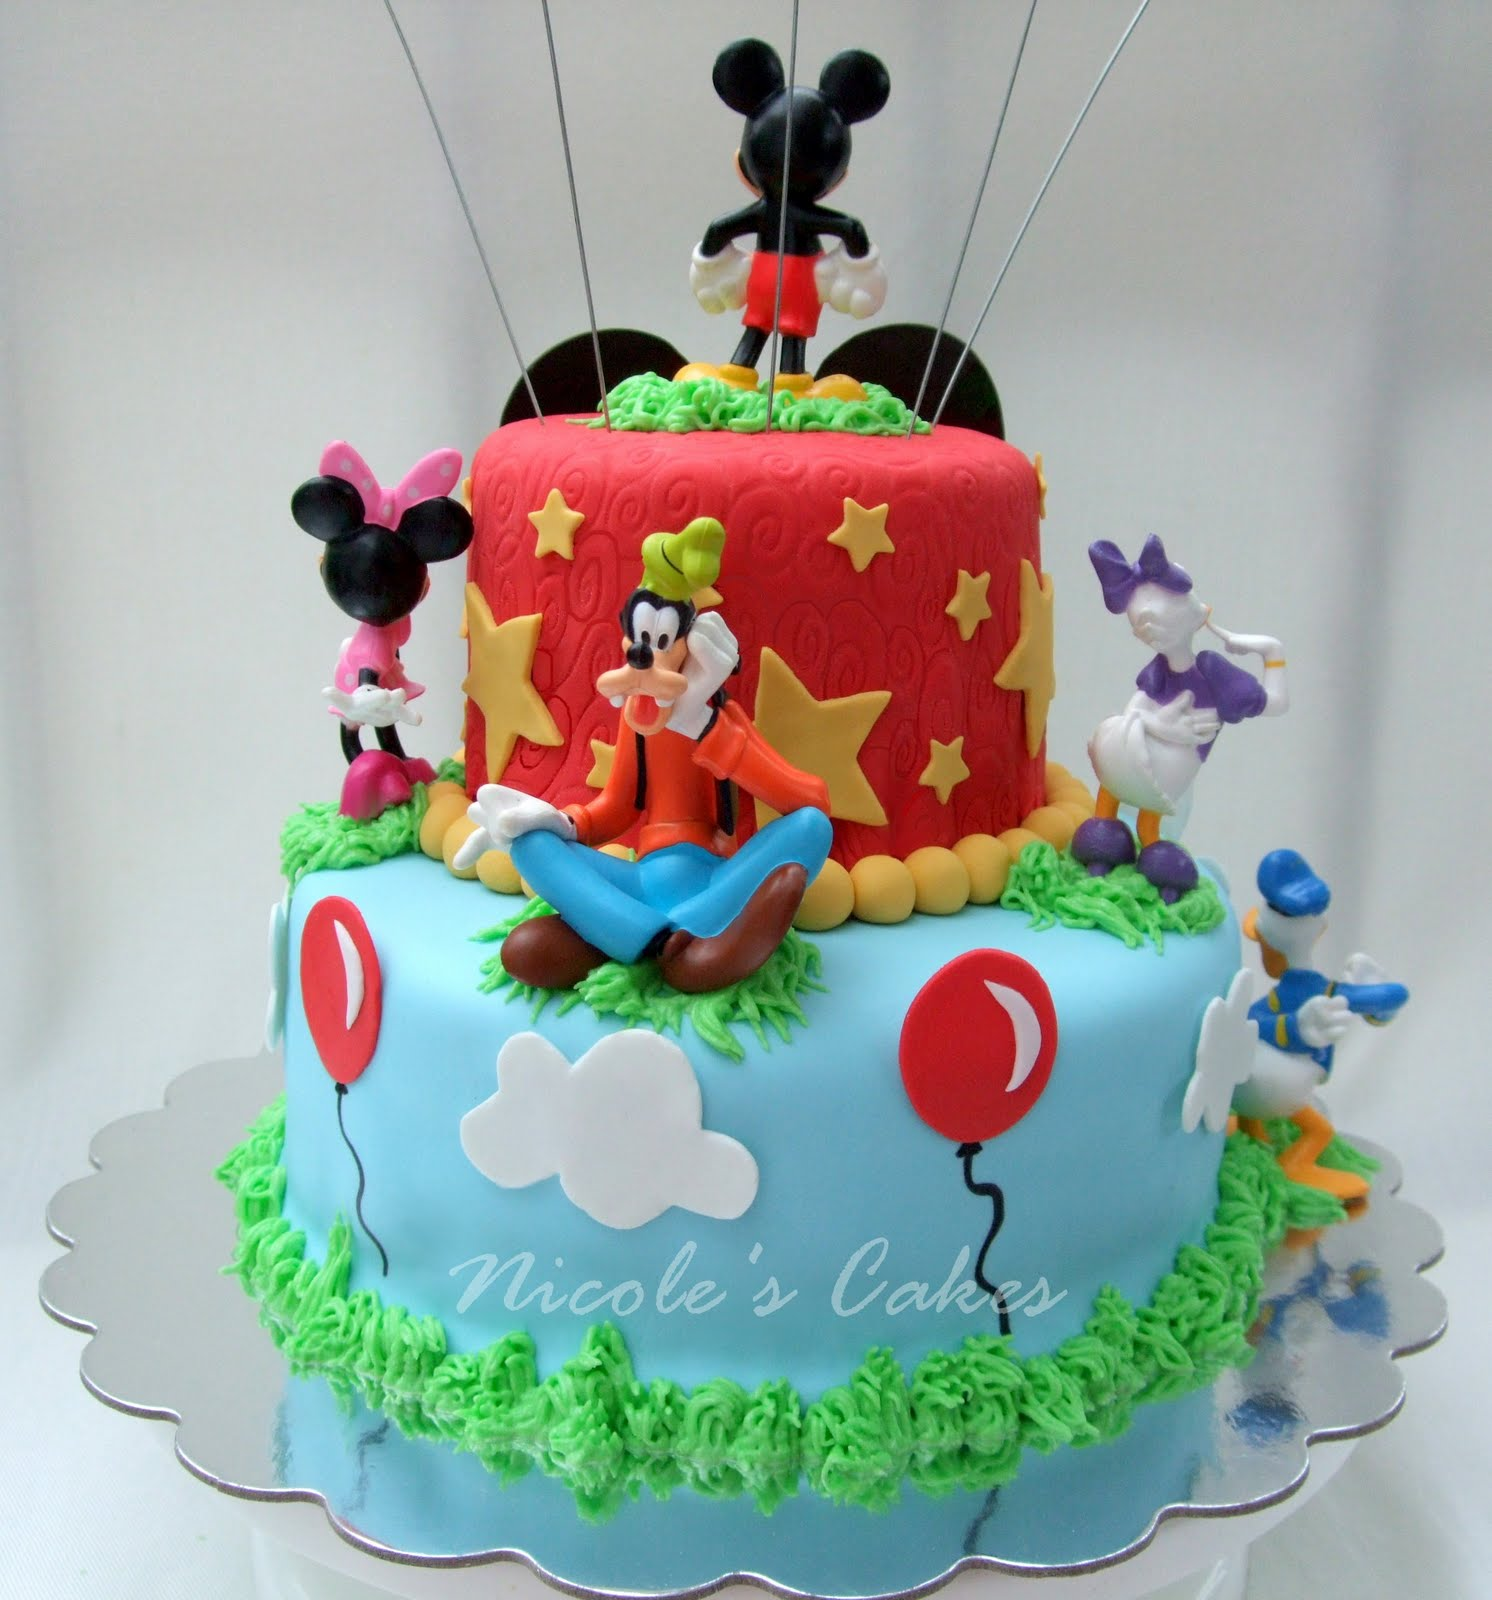 Confections, Cakes & Creations!: September 2010